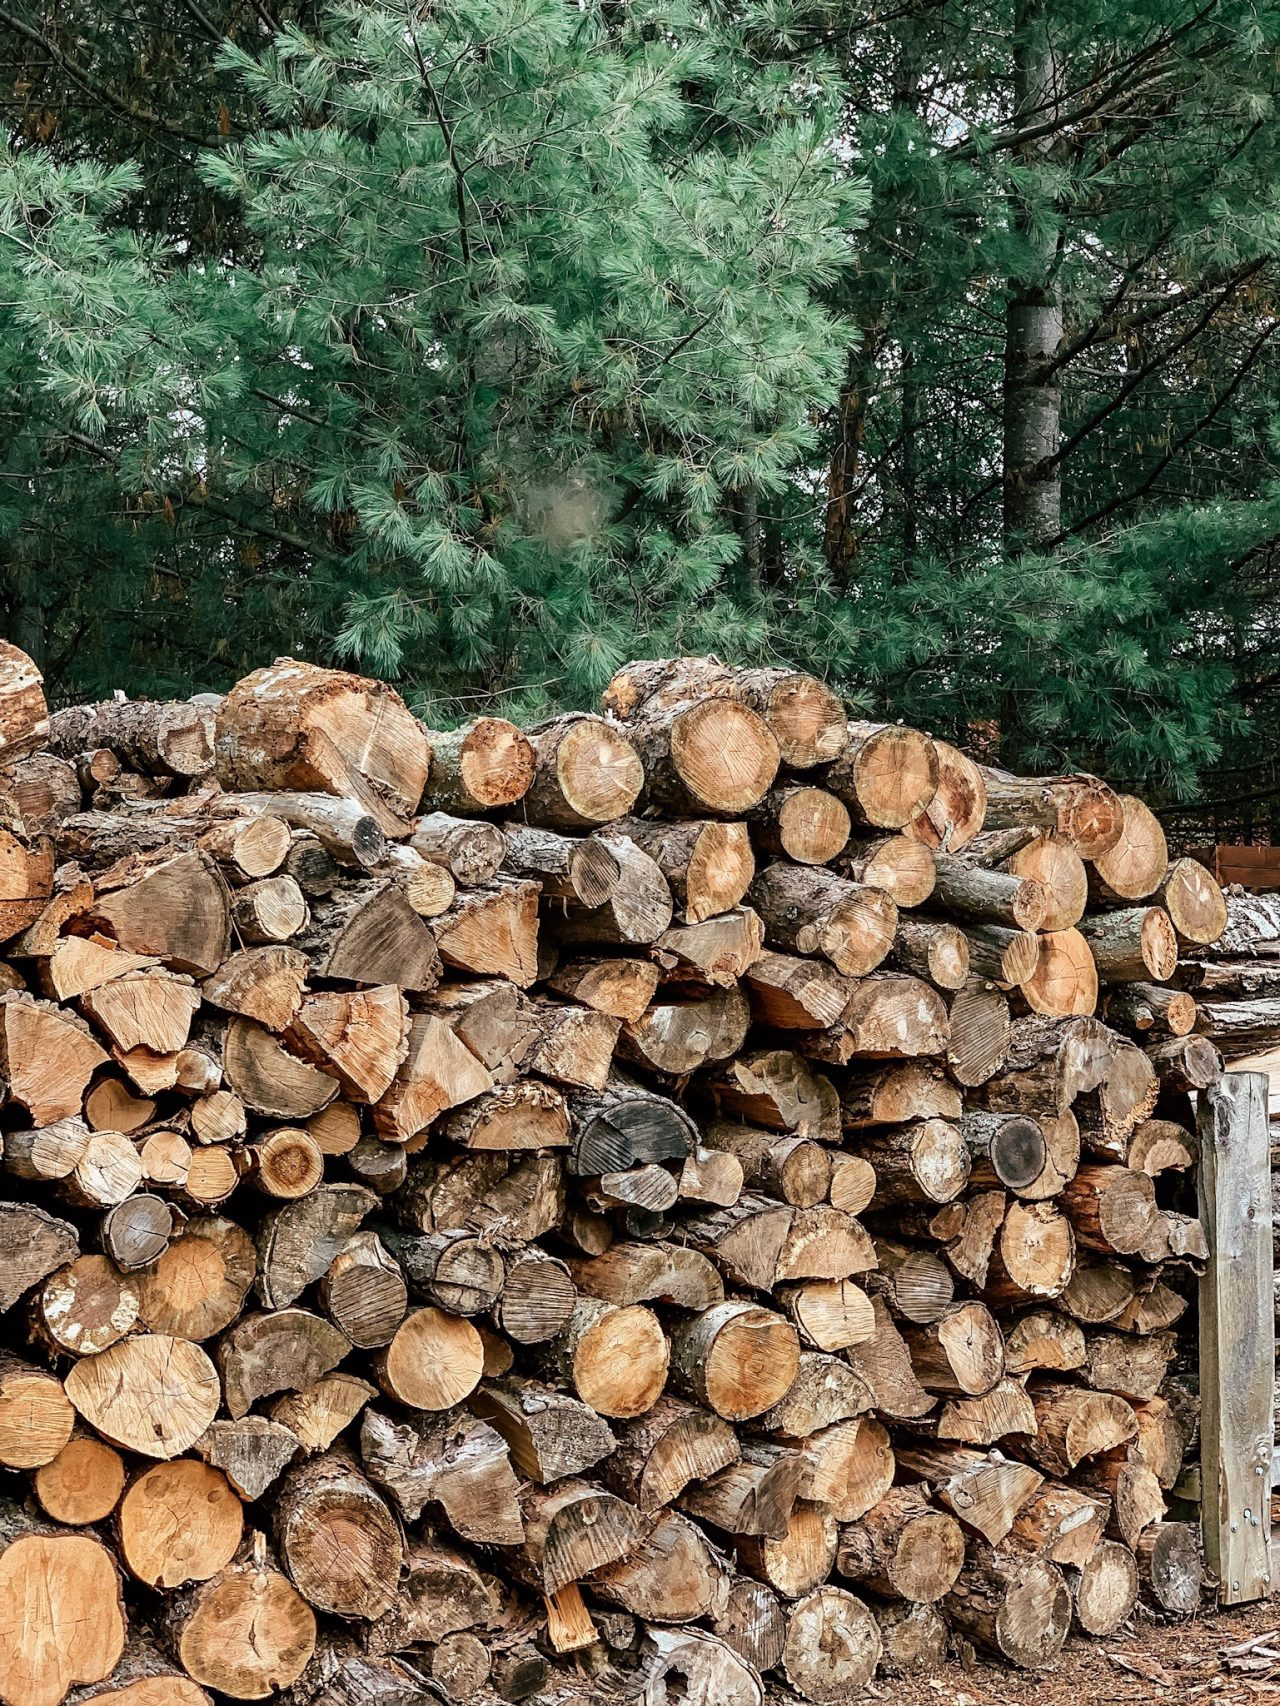 large pile of chopped wood with pines in background